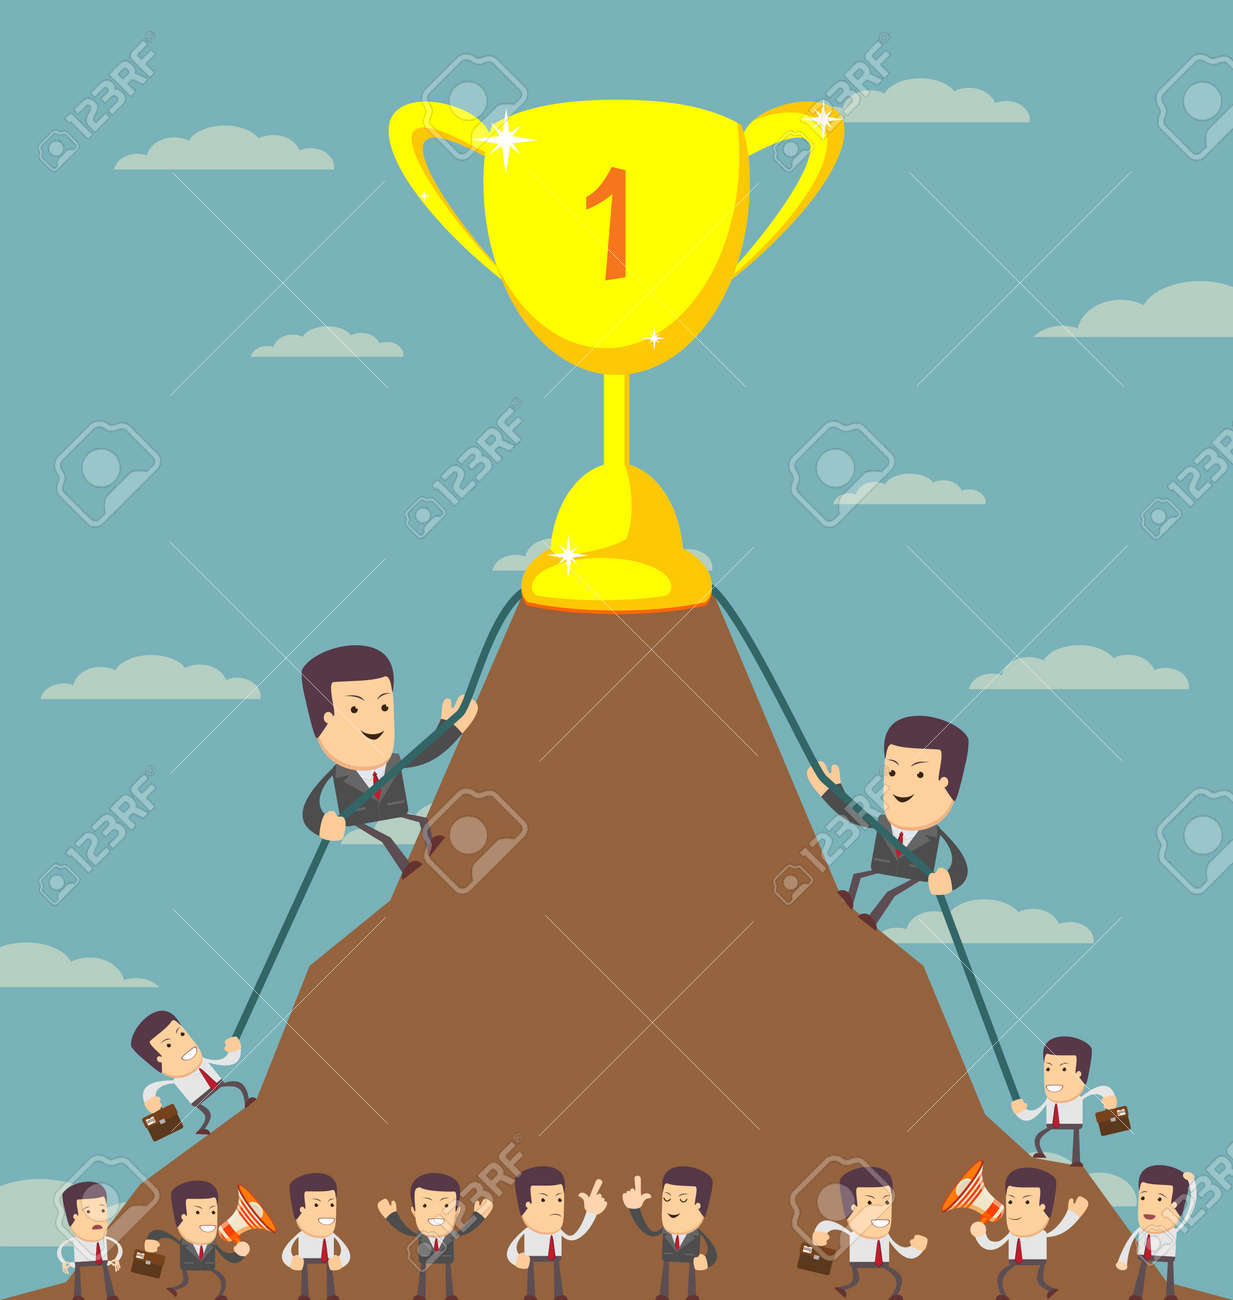 business men in career race vector illustration of a group of business men in career race vector illustration of a group of business men running in